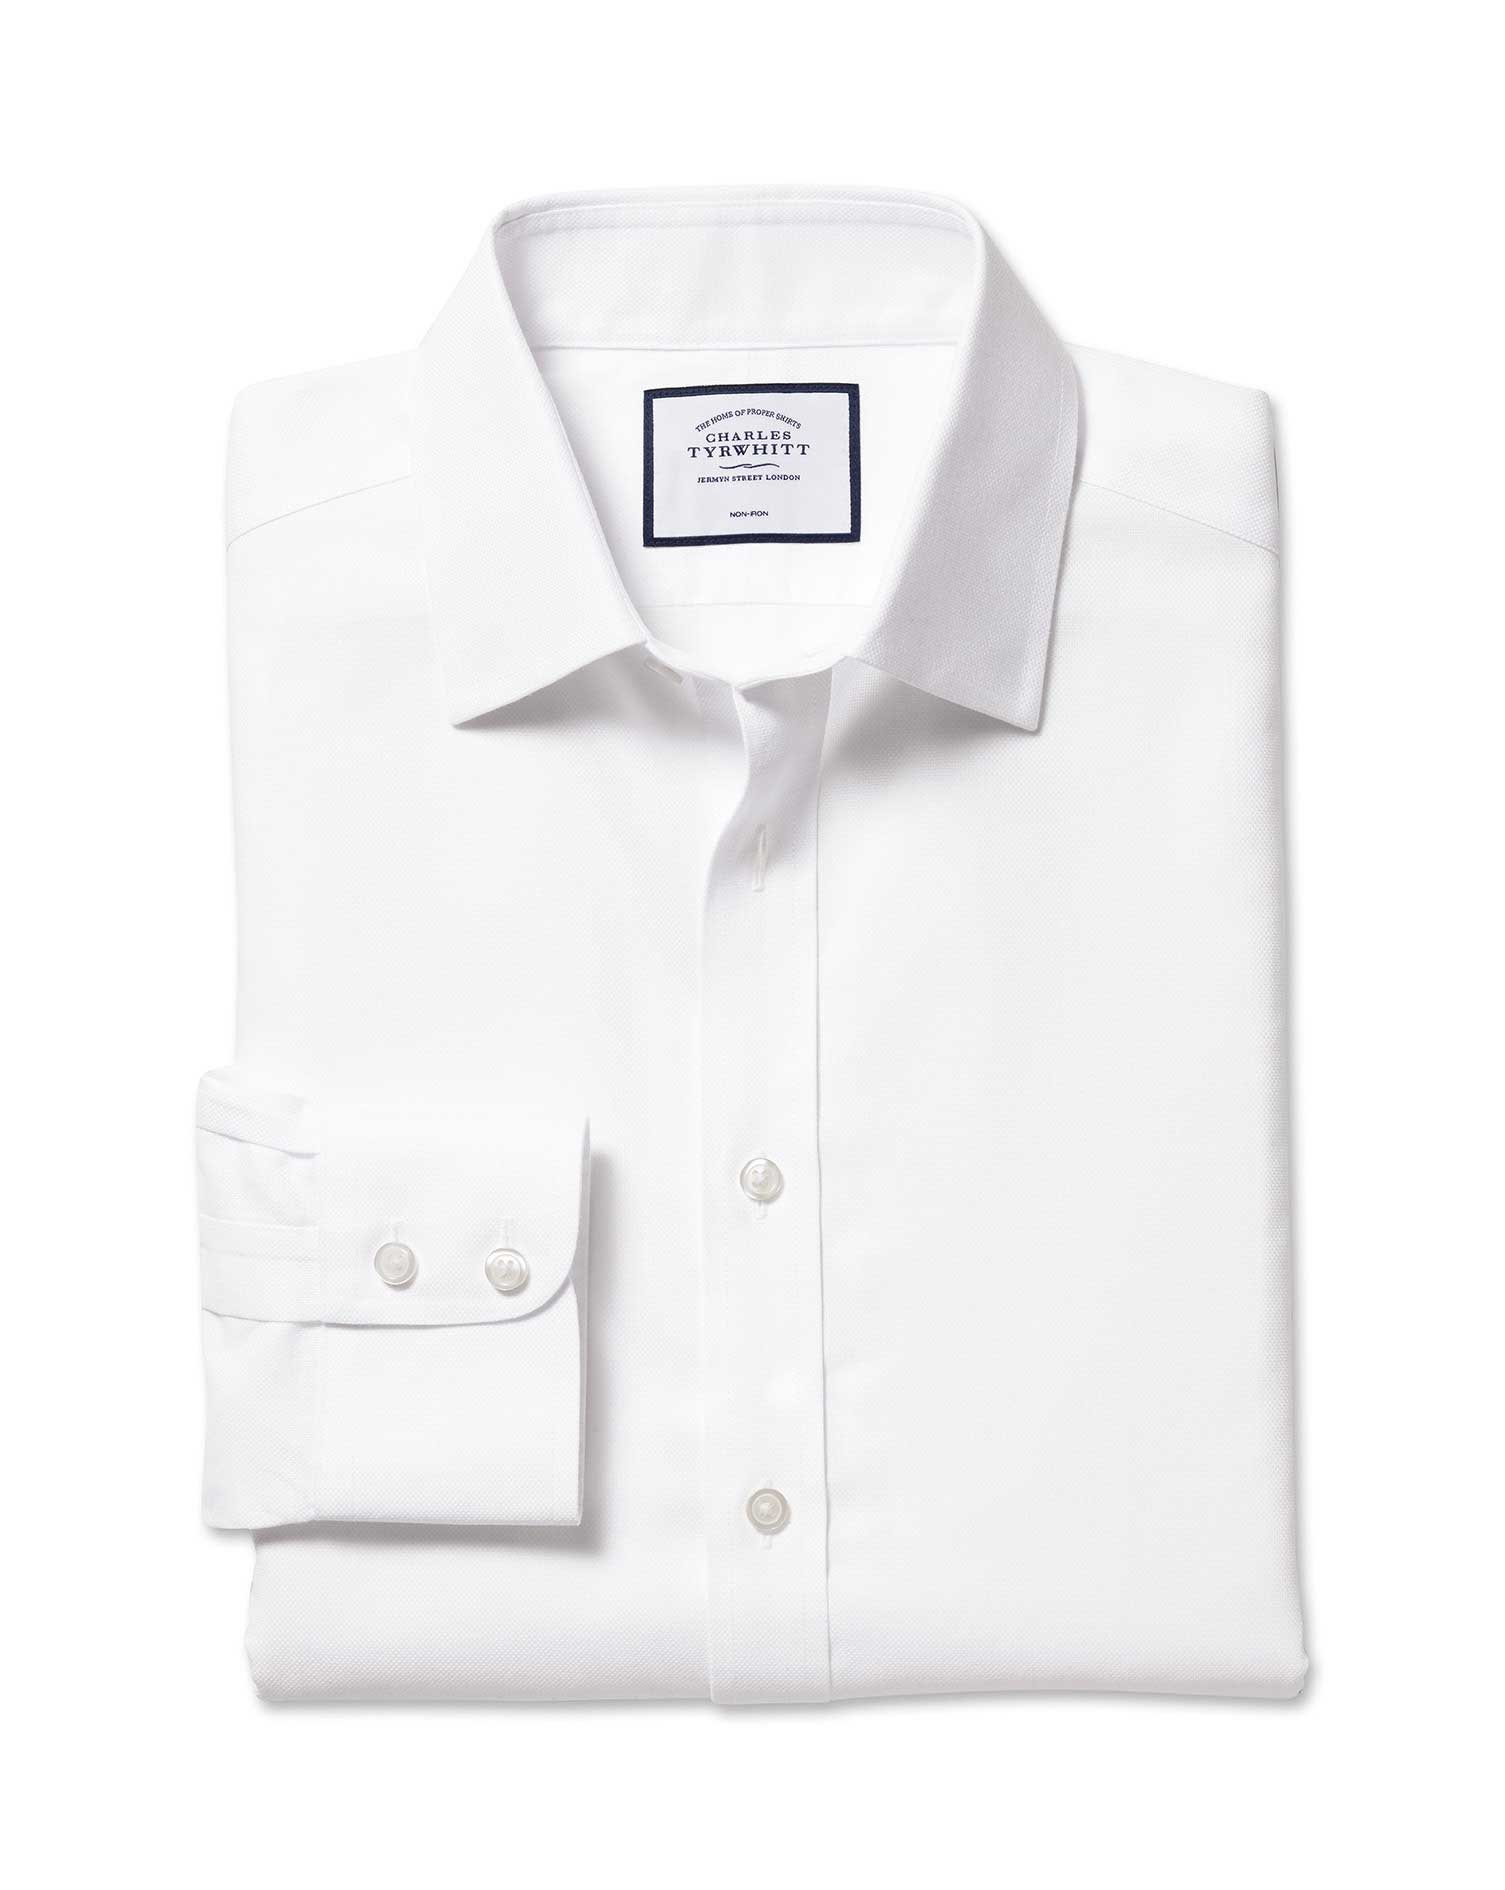 Classic Fit Non-Iron Royal Panama White Cotton Formal Shirt Double Cuff Size 16/35 by Charles Tyrwhi